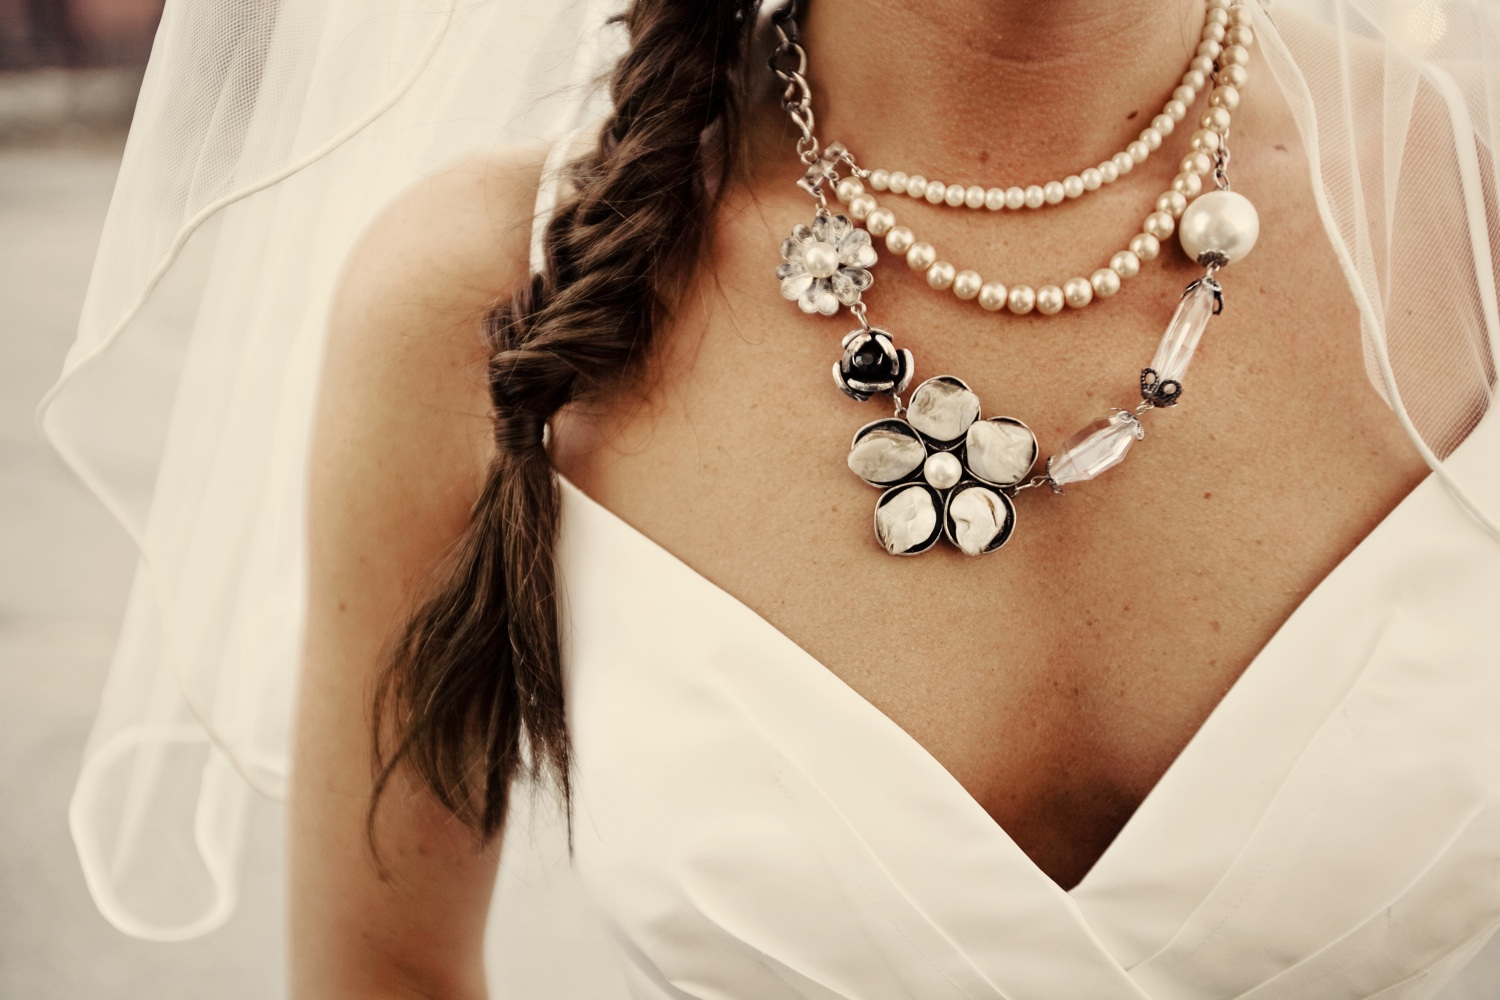 Brides of adelaide magazine statement necklaces for Back necklace for wedding dress